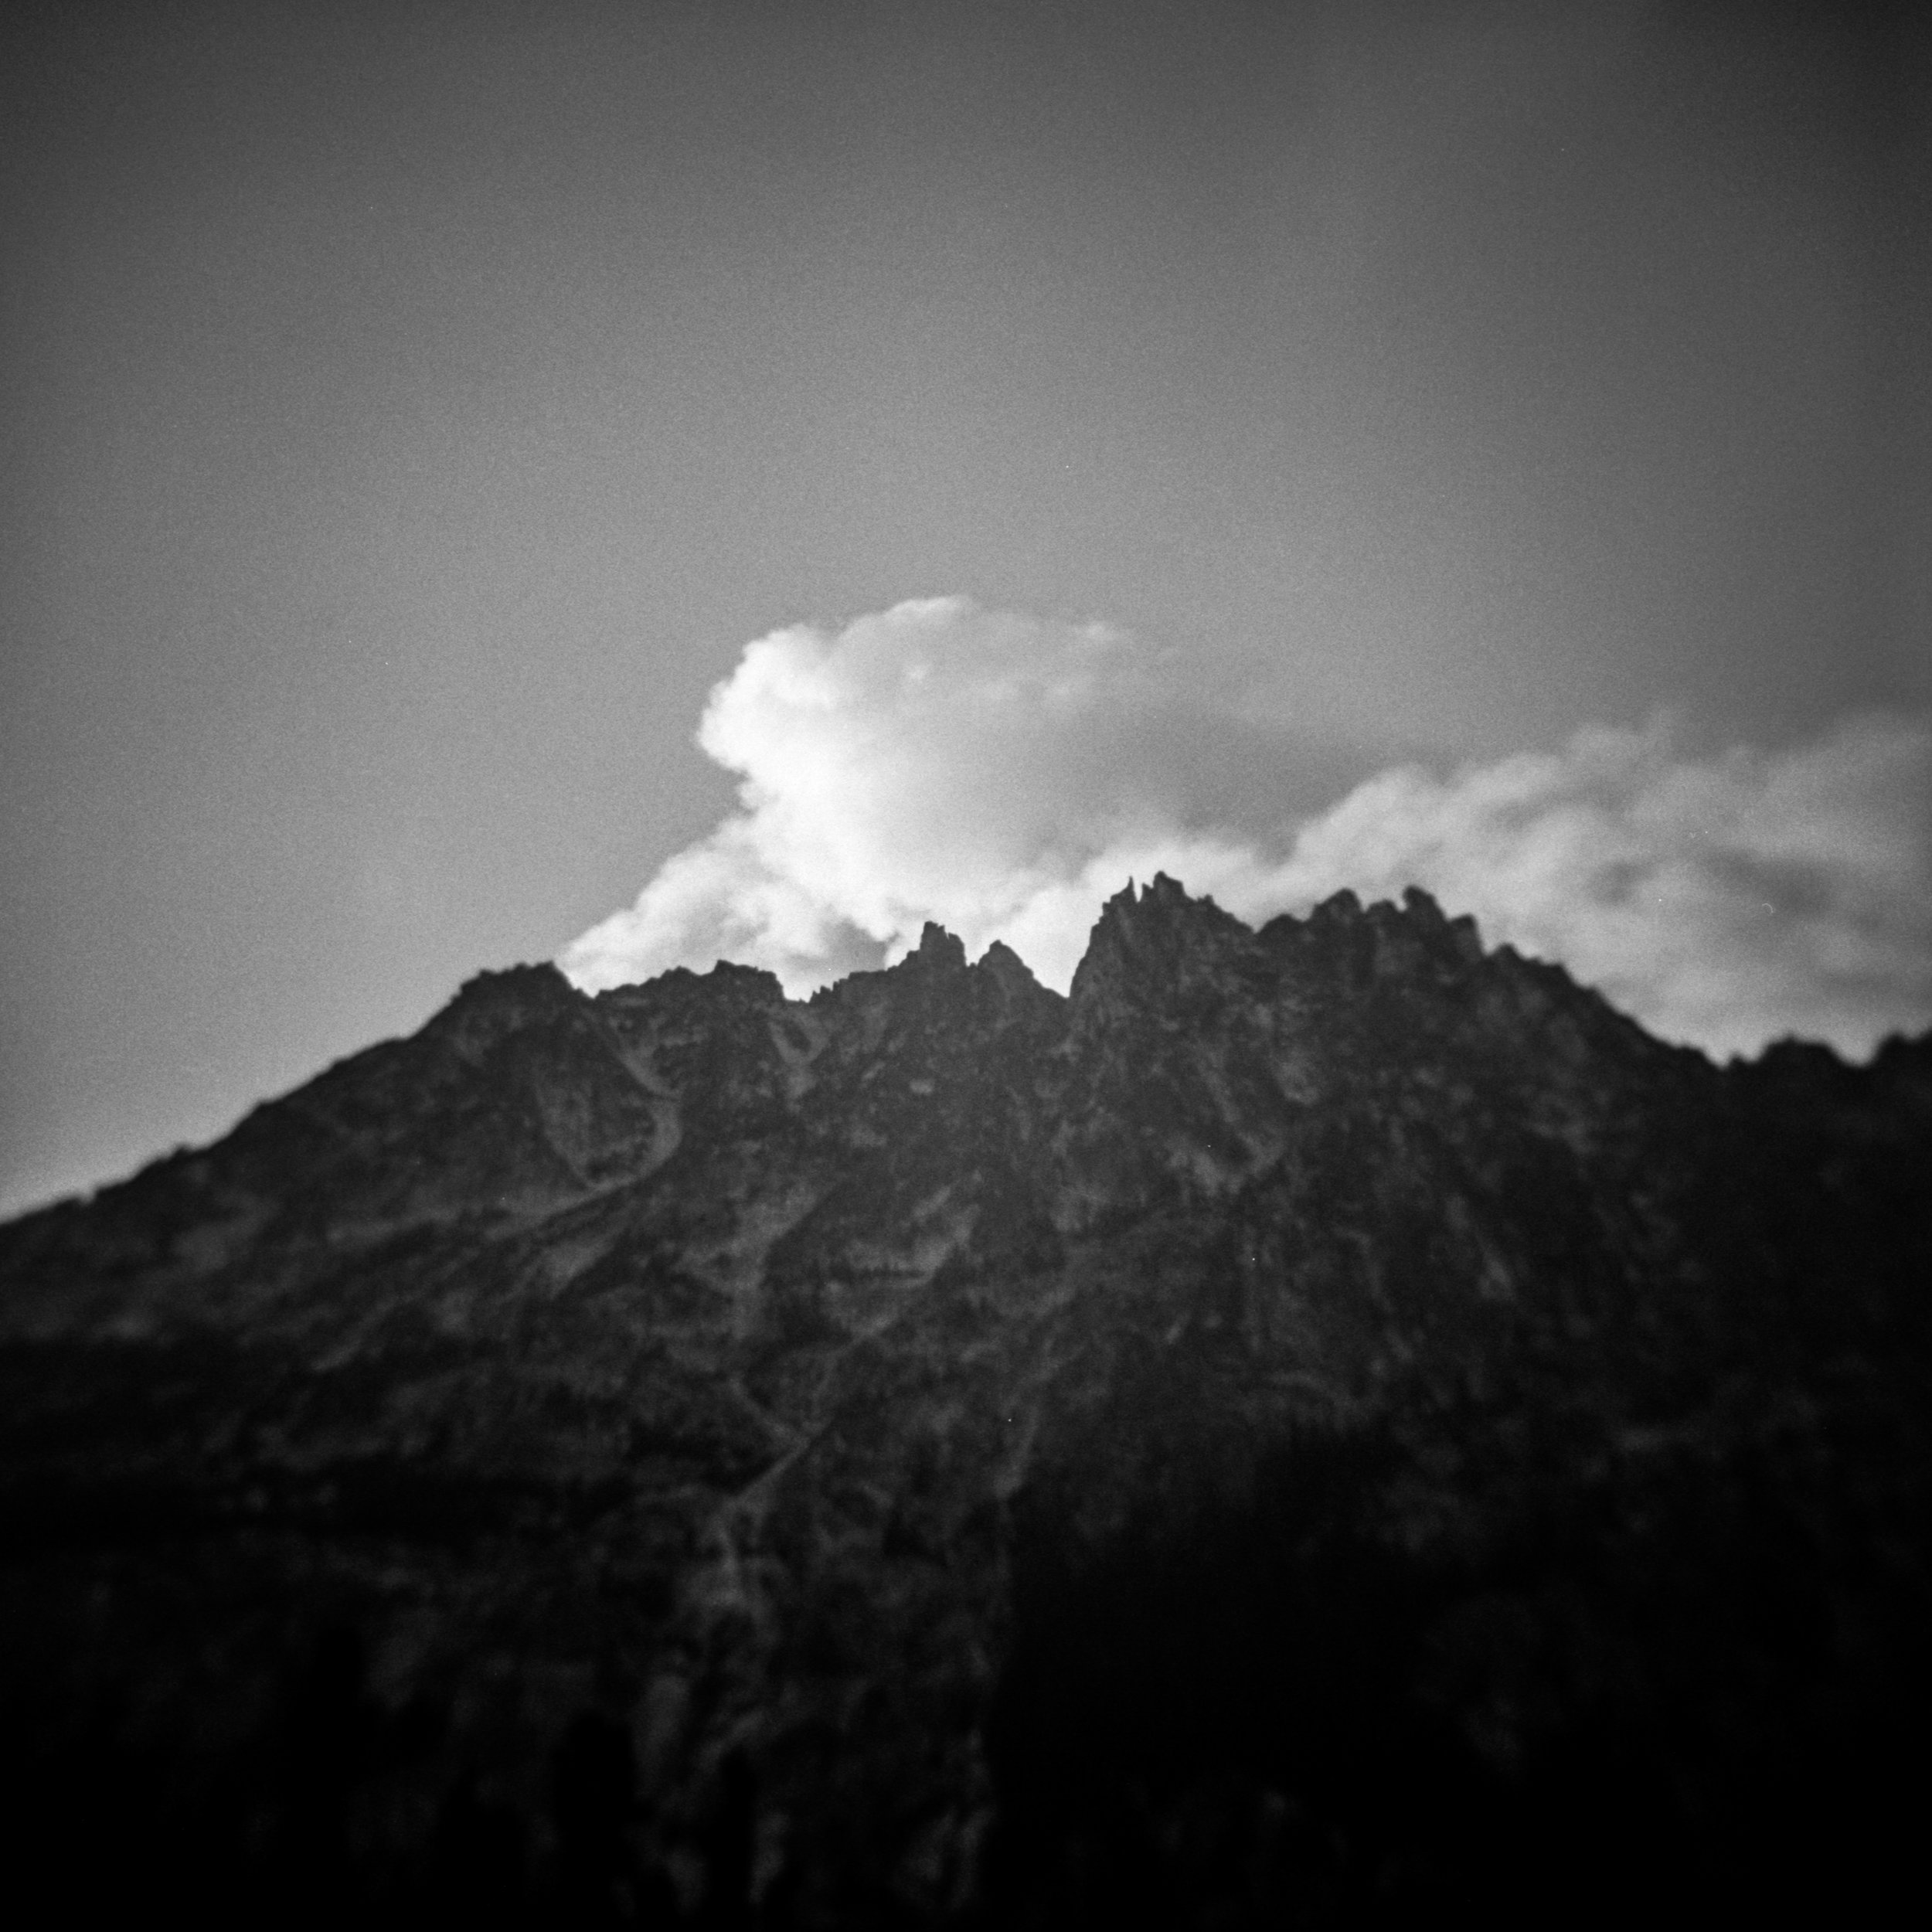 Smoke from wildfires, Alpine Lakes Wilderness, September 2017